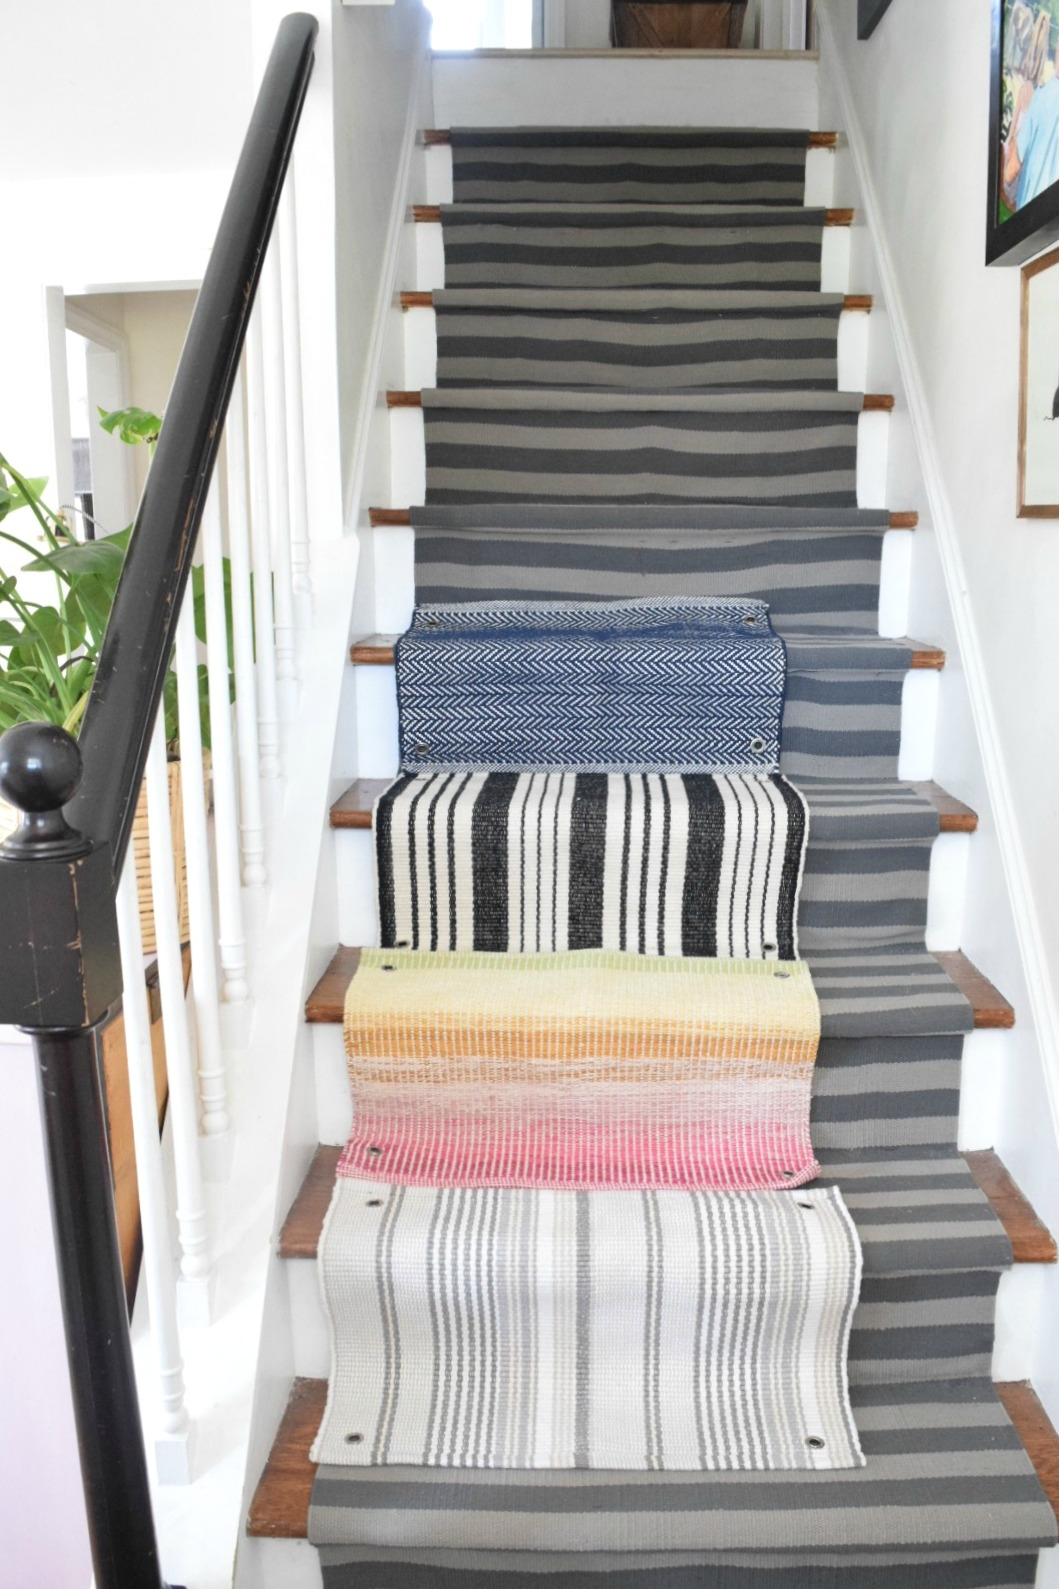 Learn From Our Mistakes When Installing A Stair Runner Nesting | Rug Runners For Stairs | Wood | Antelope | Hallway | Persian | Mid Century Modern